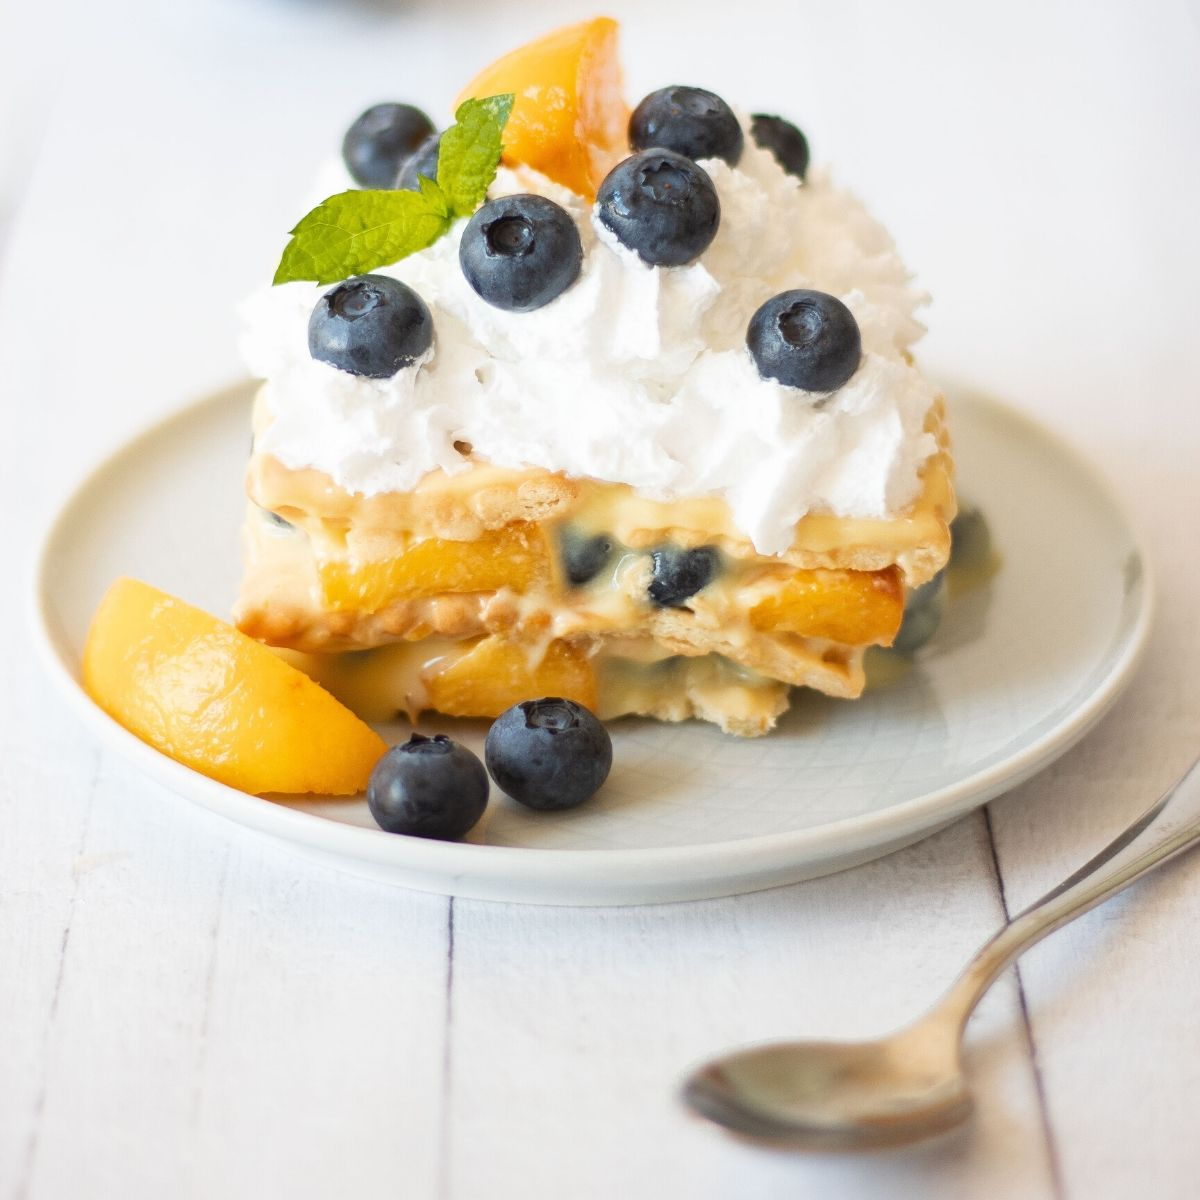 Vegan Vanilla Icebox Cake Recipe with Pudding, Blueberries and Peaches